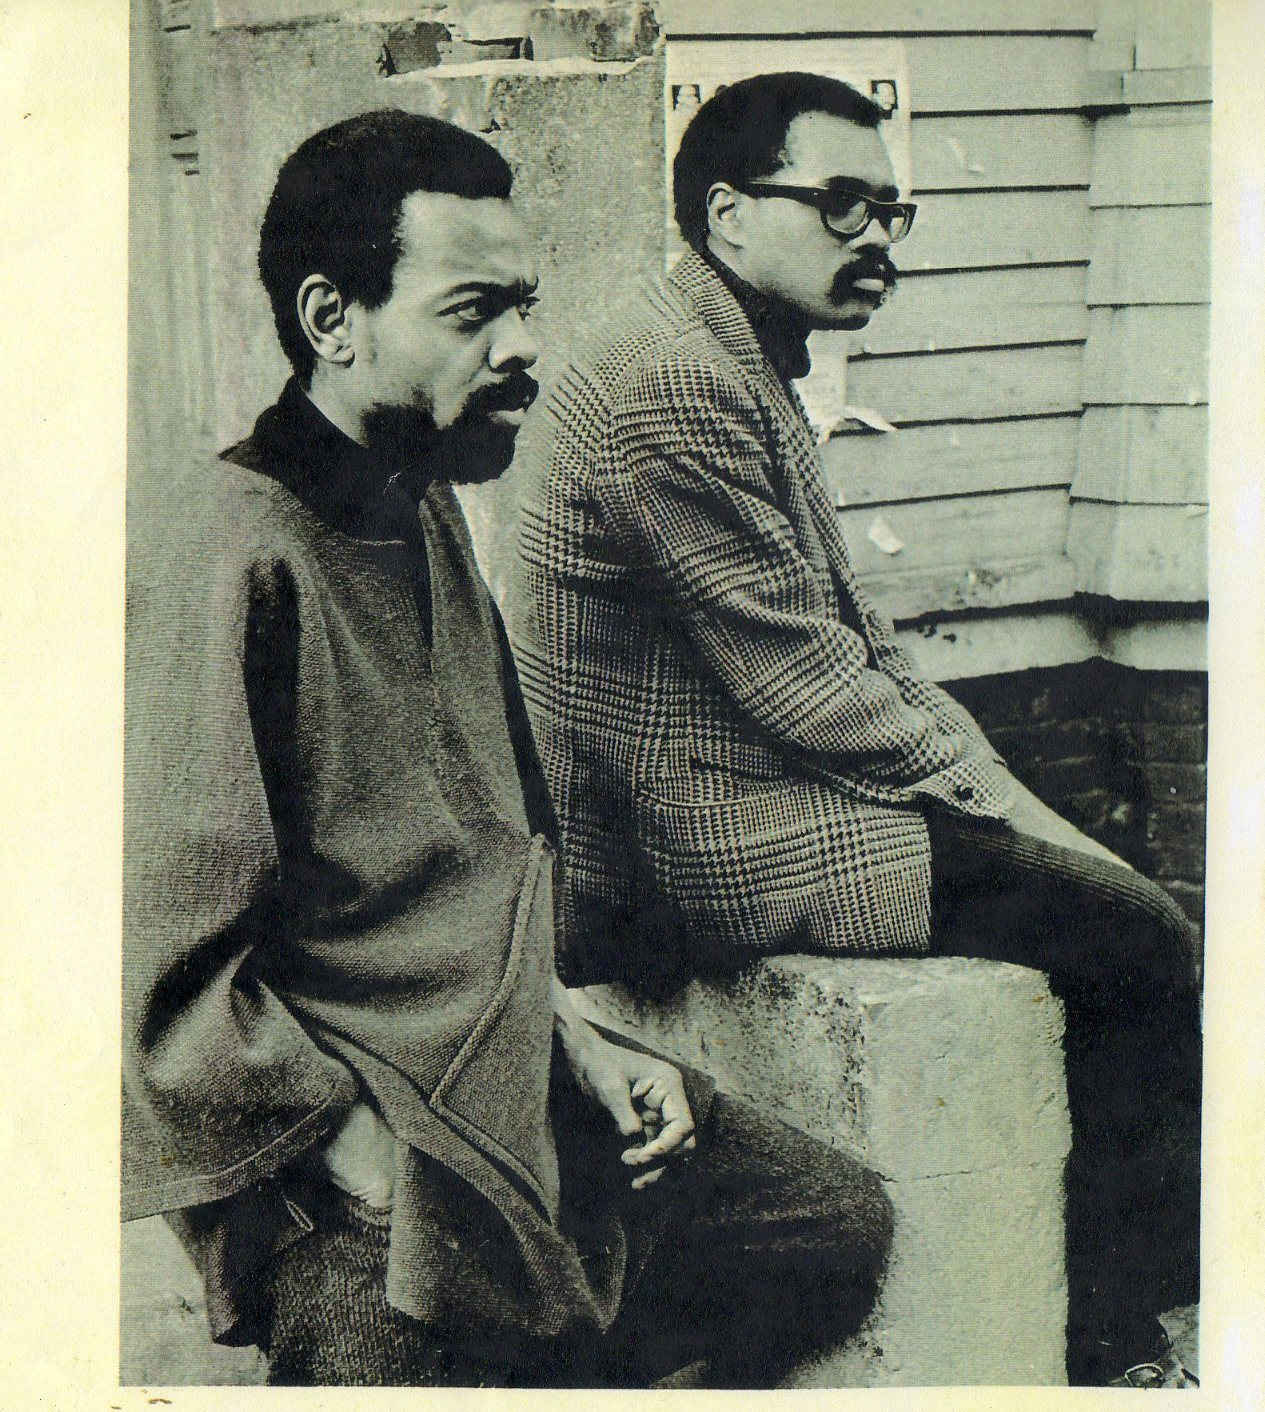 Amiri Baraka and Larry Neal